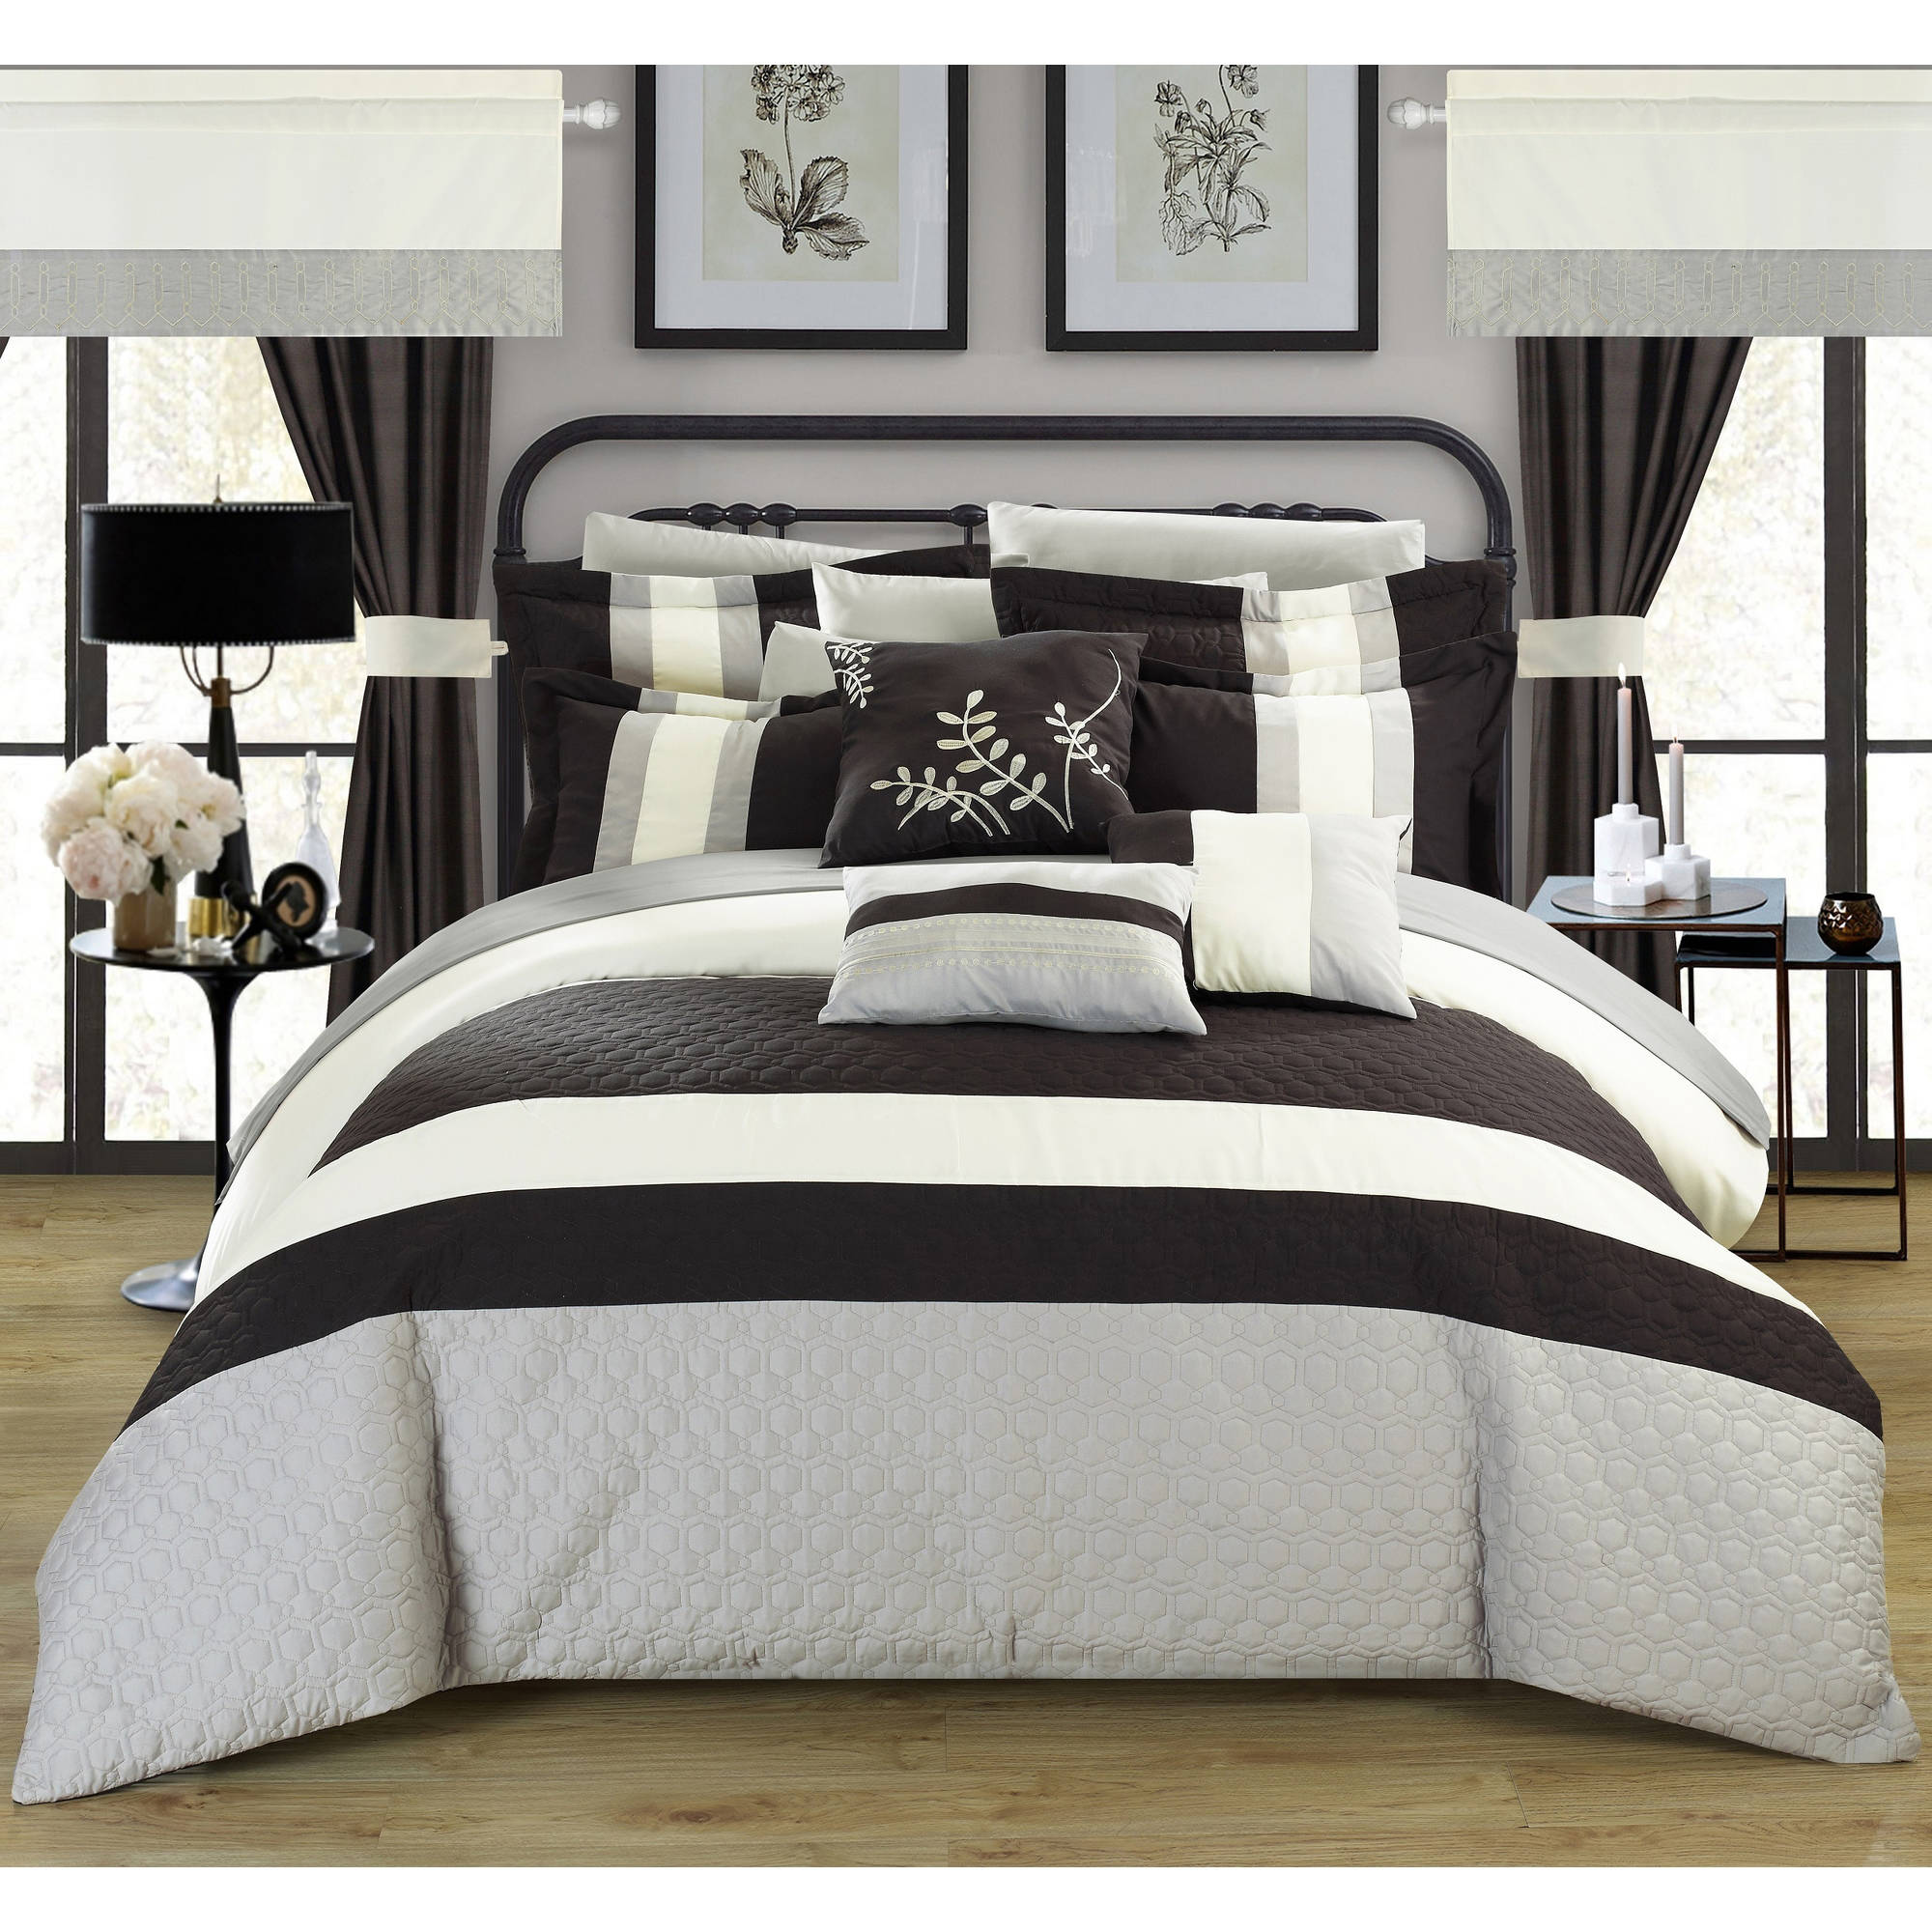 Lorena 24-Piece Complete Bed in a Bag Bedding Comforter Set ...